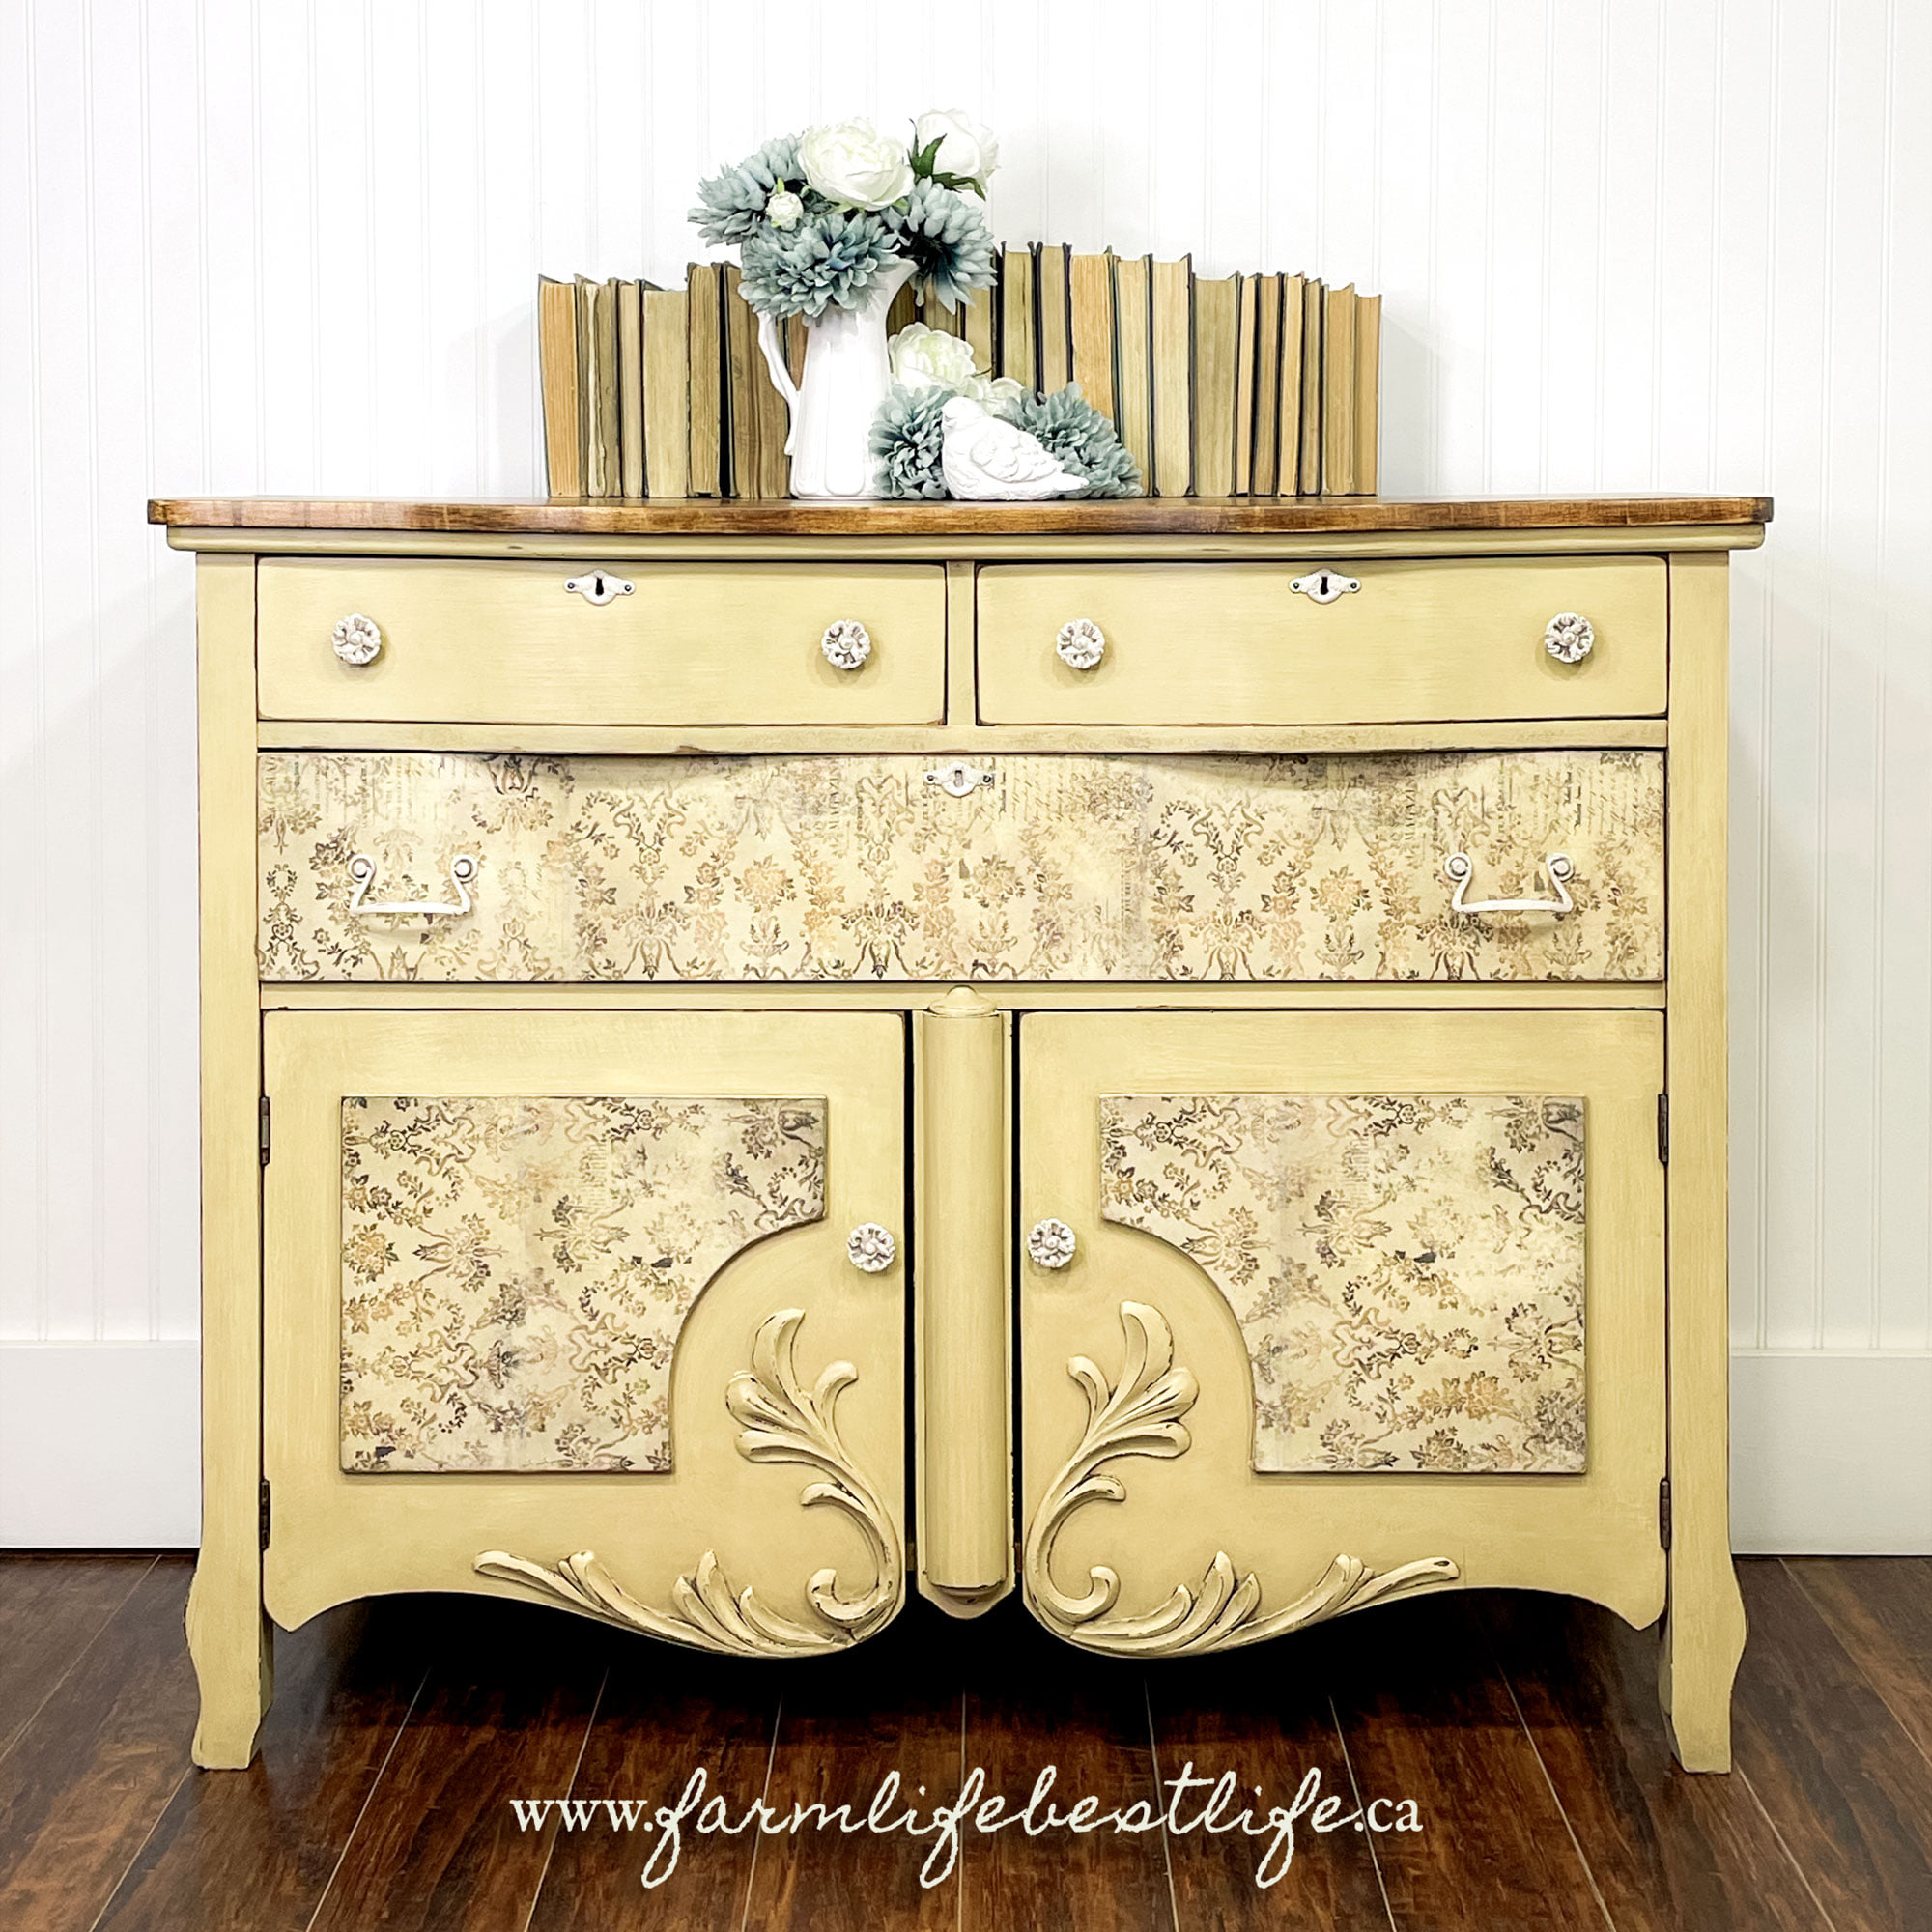 pale yellow dresser/cabinet with natural wood top and rice paper drawer fronts